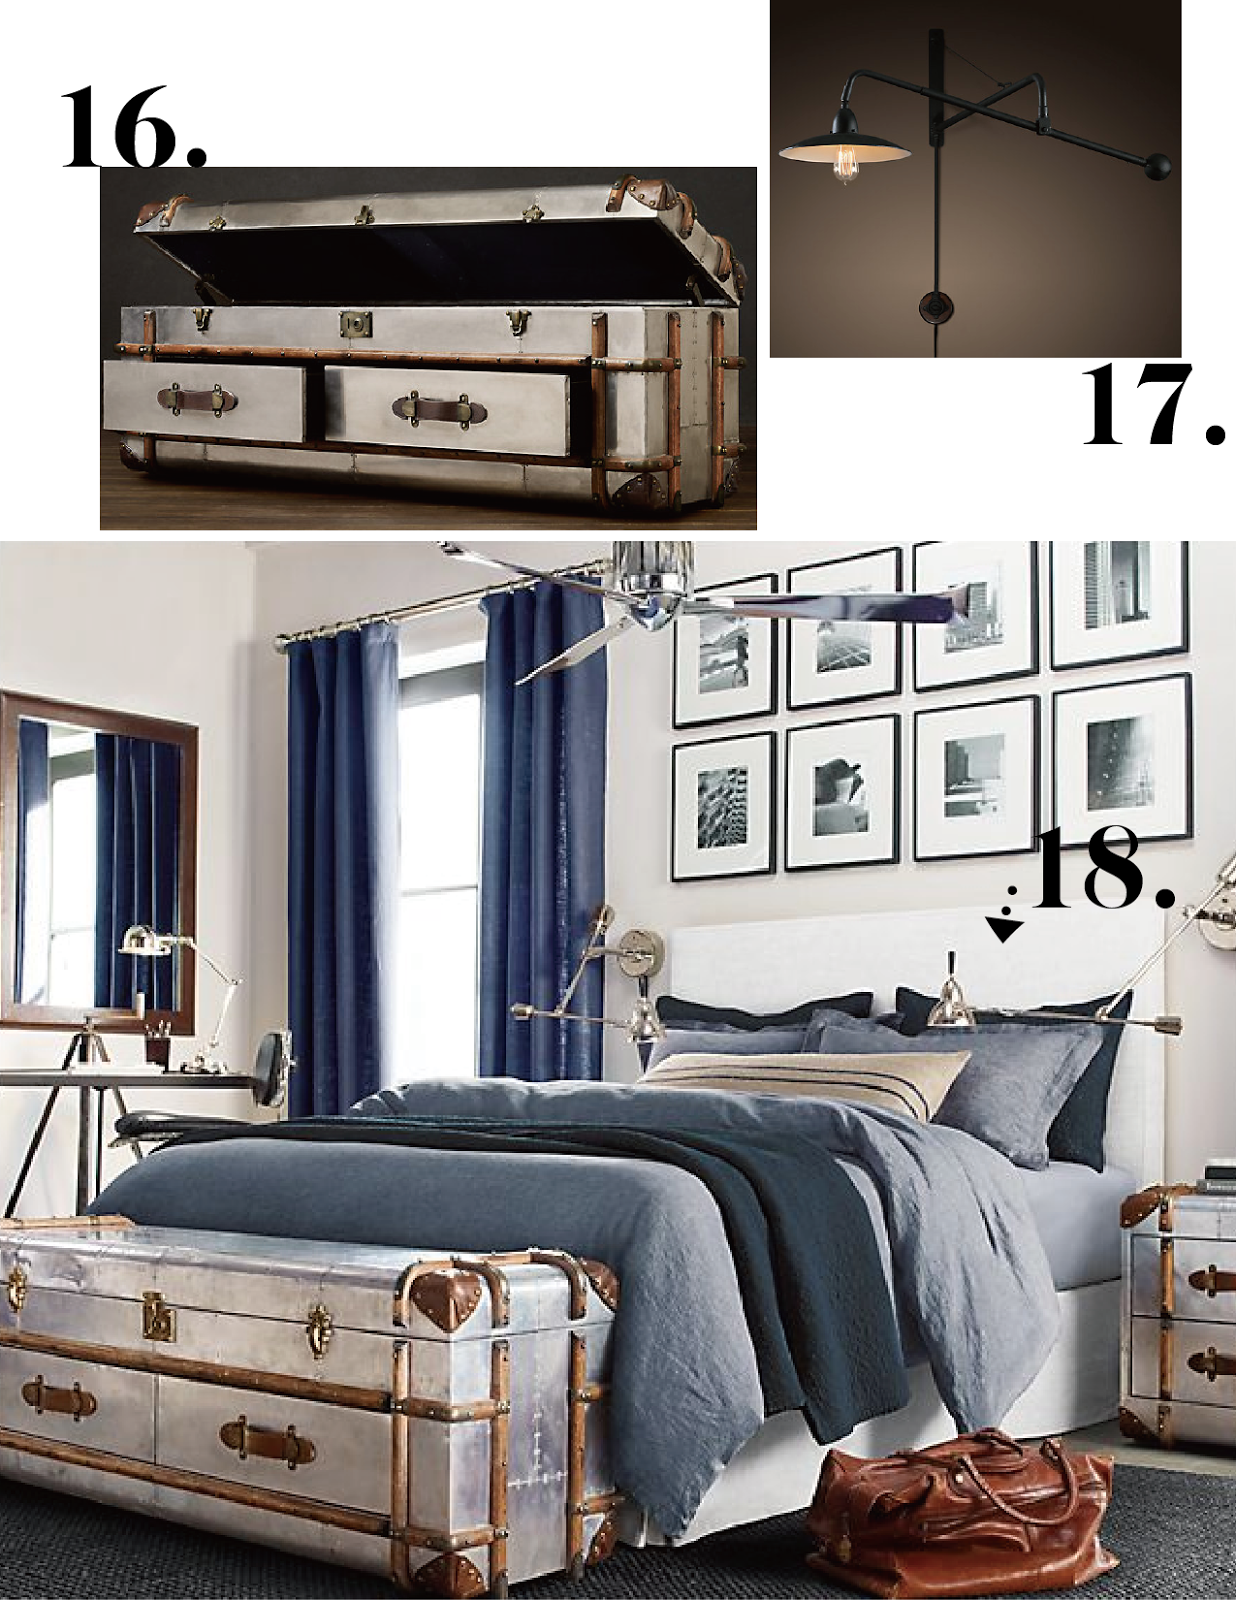 Bedroom Sets Restoration Hardware delighful bedroom sets restoration hardware in inspiration decorating